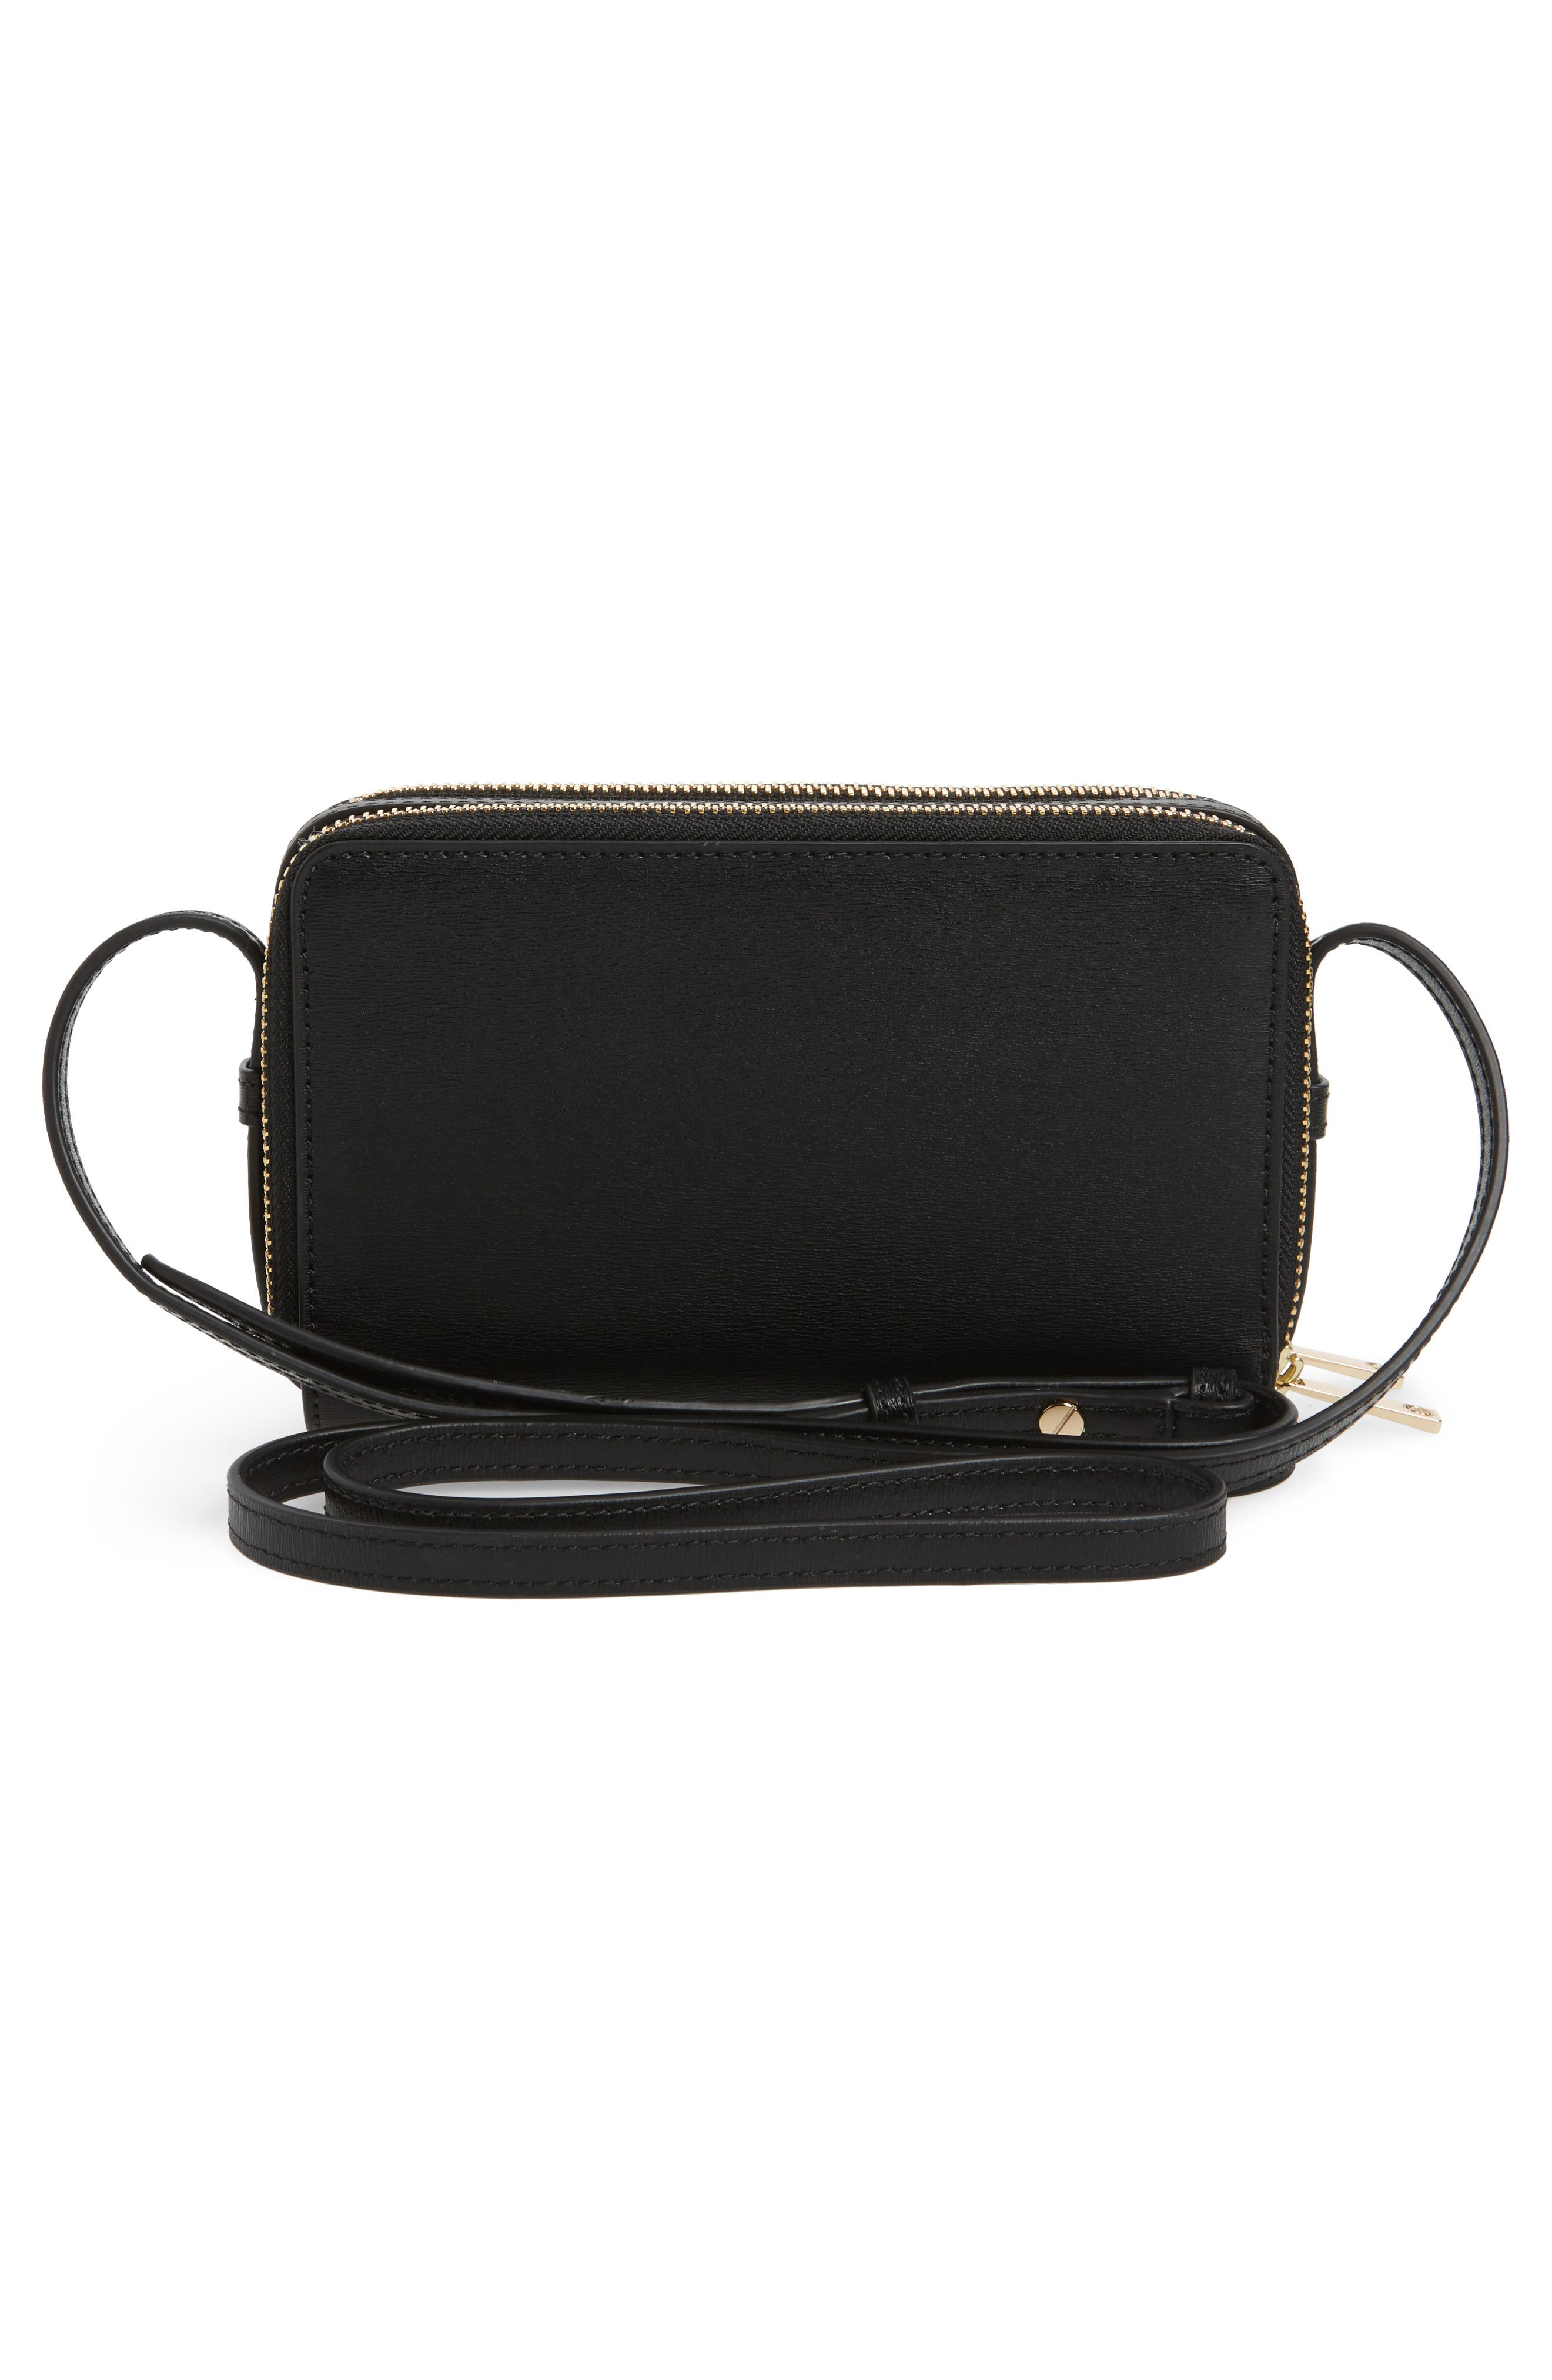 TORY BURCH Mini Parker Leather Crossbody Bag In Black | ModeSens